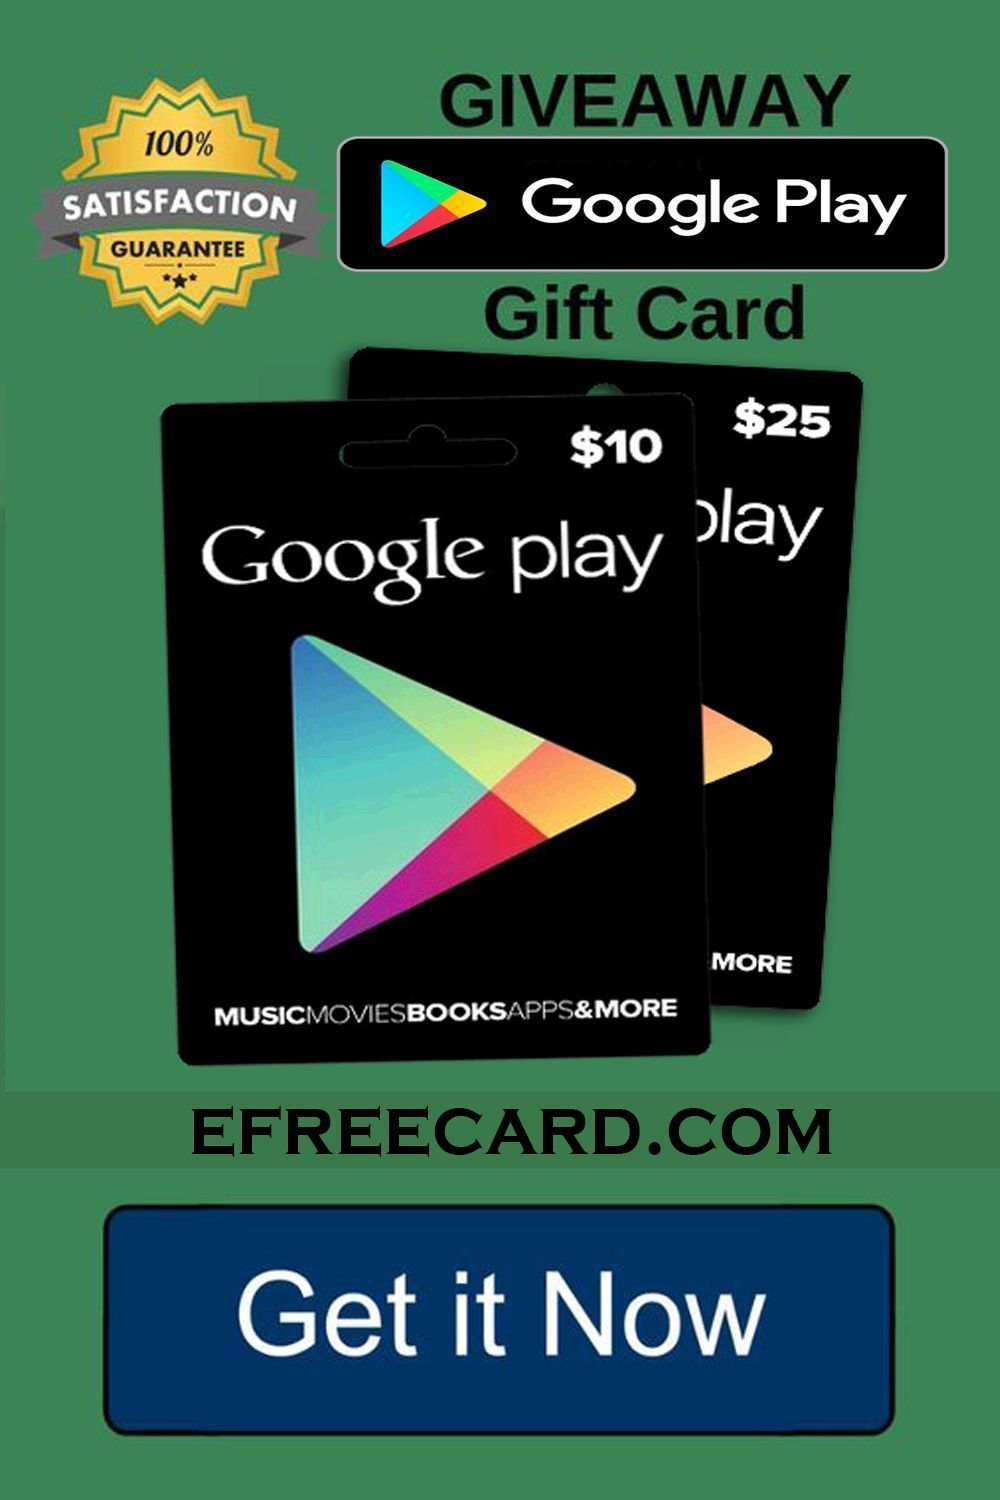 How To Get Redeem Code For Play Store Free Google Play Gift Card Unused Codes How To Get Redeem Code For Play Store Free Google Play Gift Card Unuse